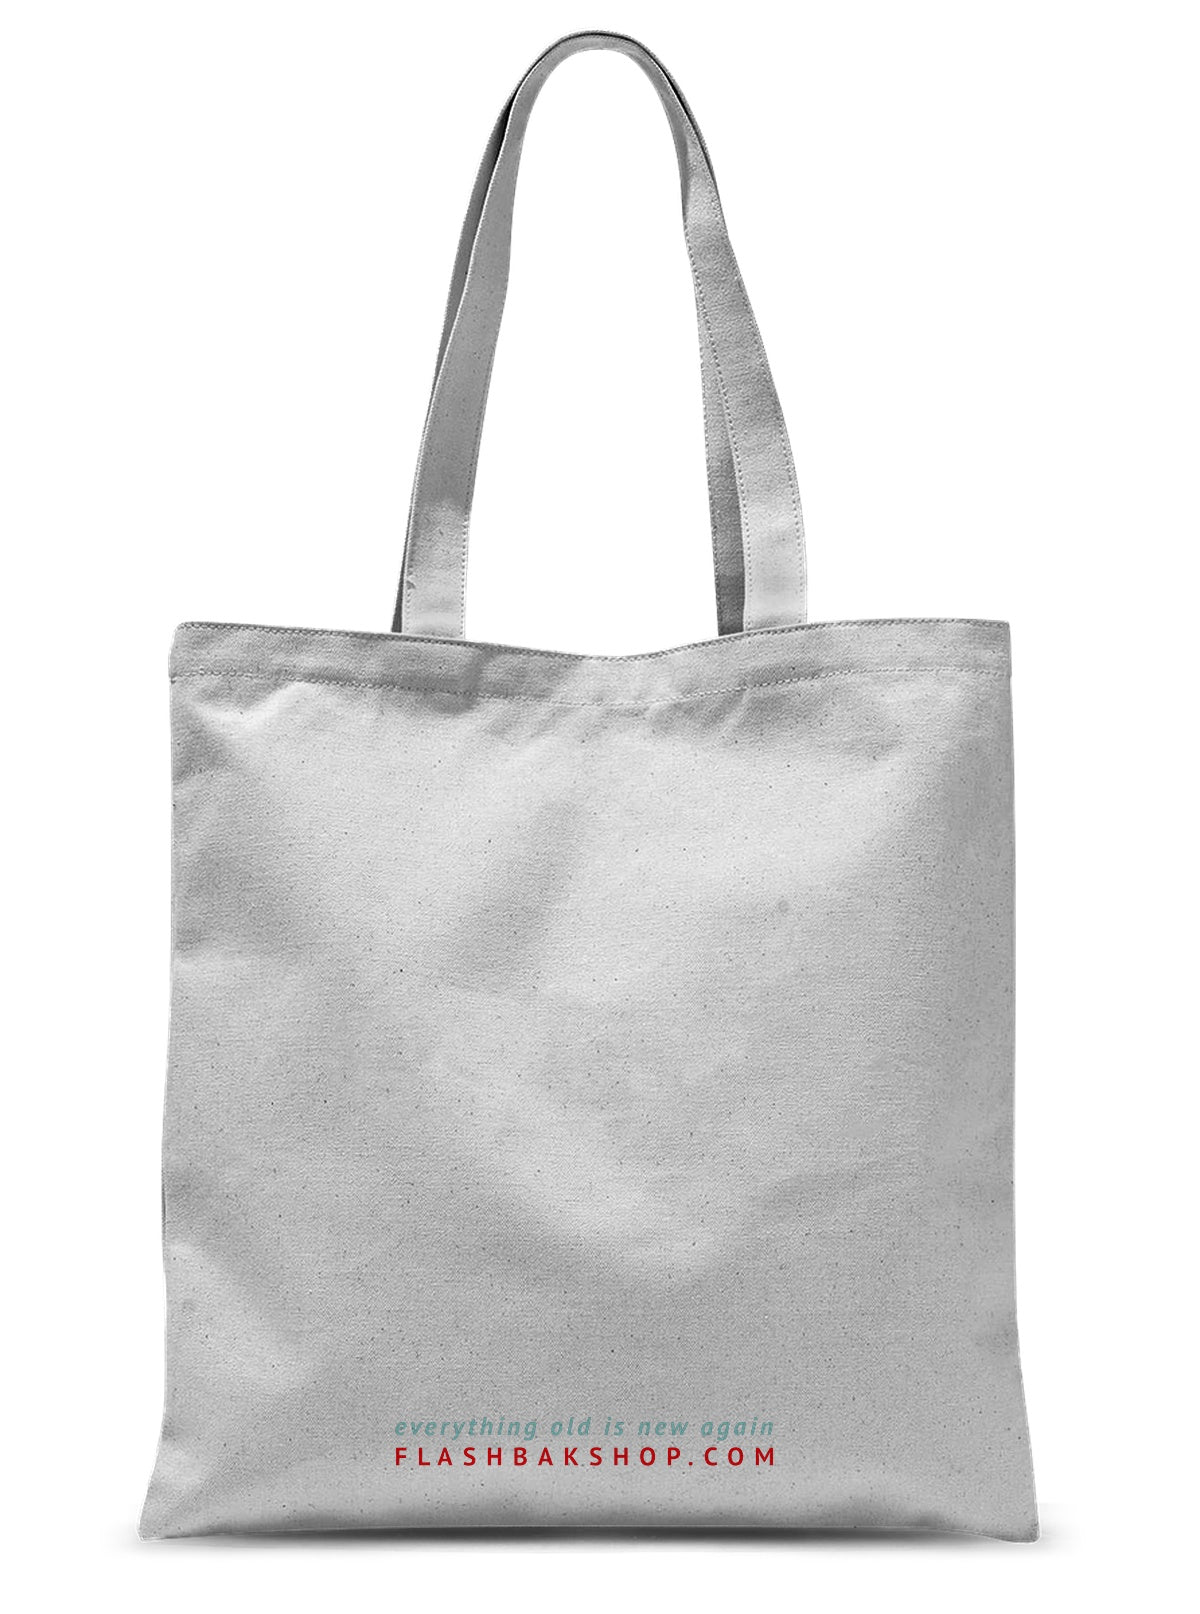 Chromatic Scale Sublimation Tote Bag